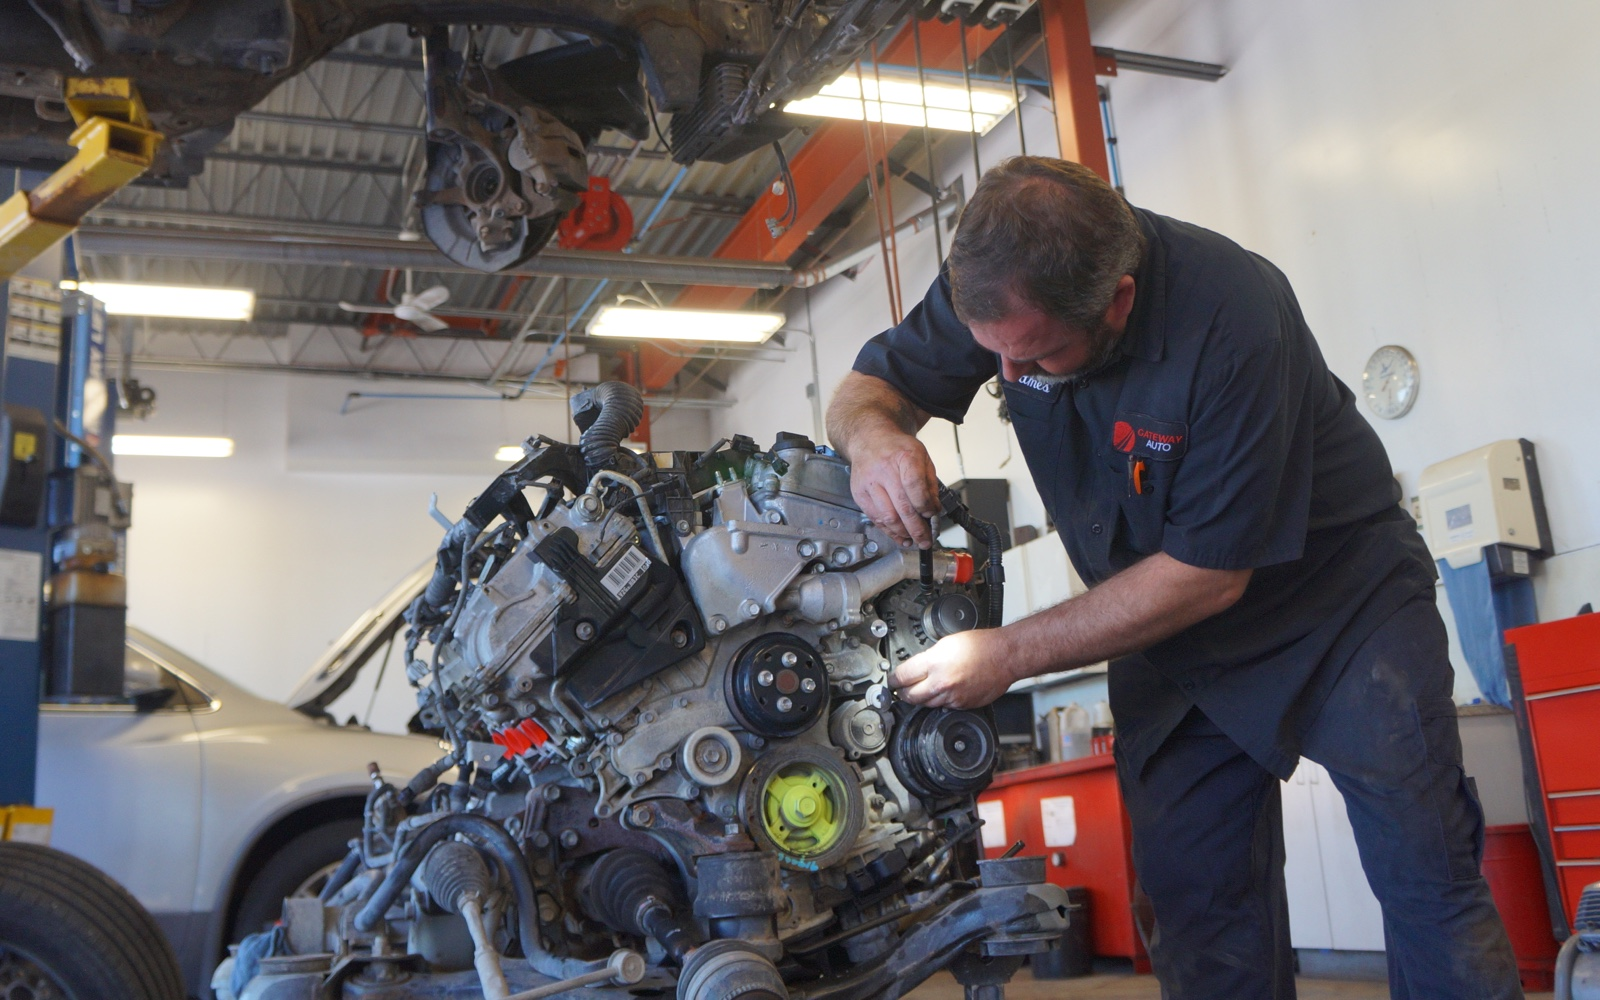 One of Gateway Auto's mechanical technicians working on an engine